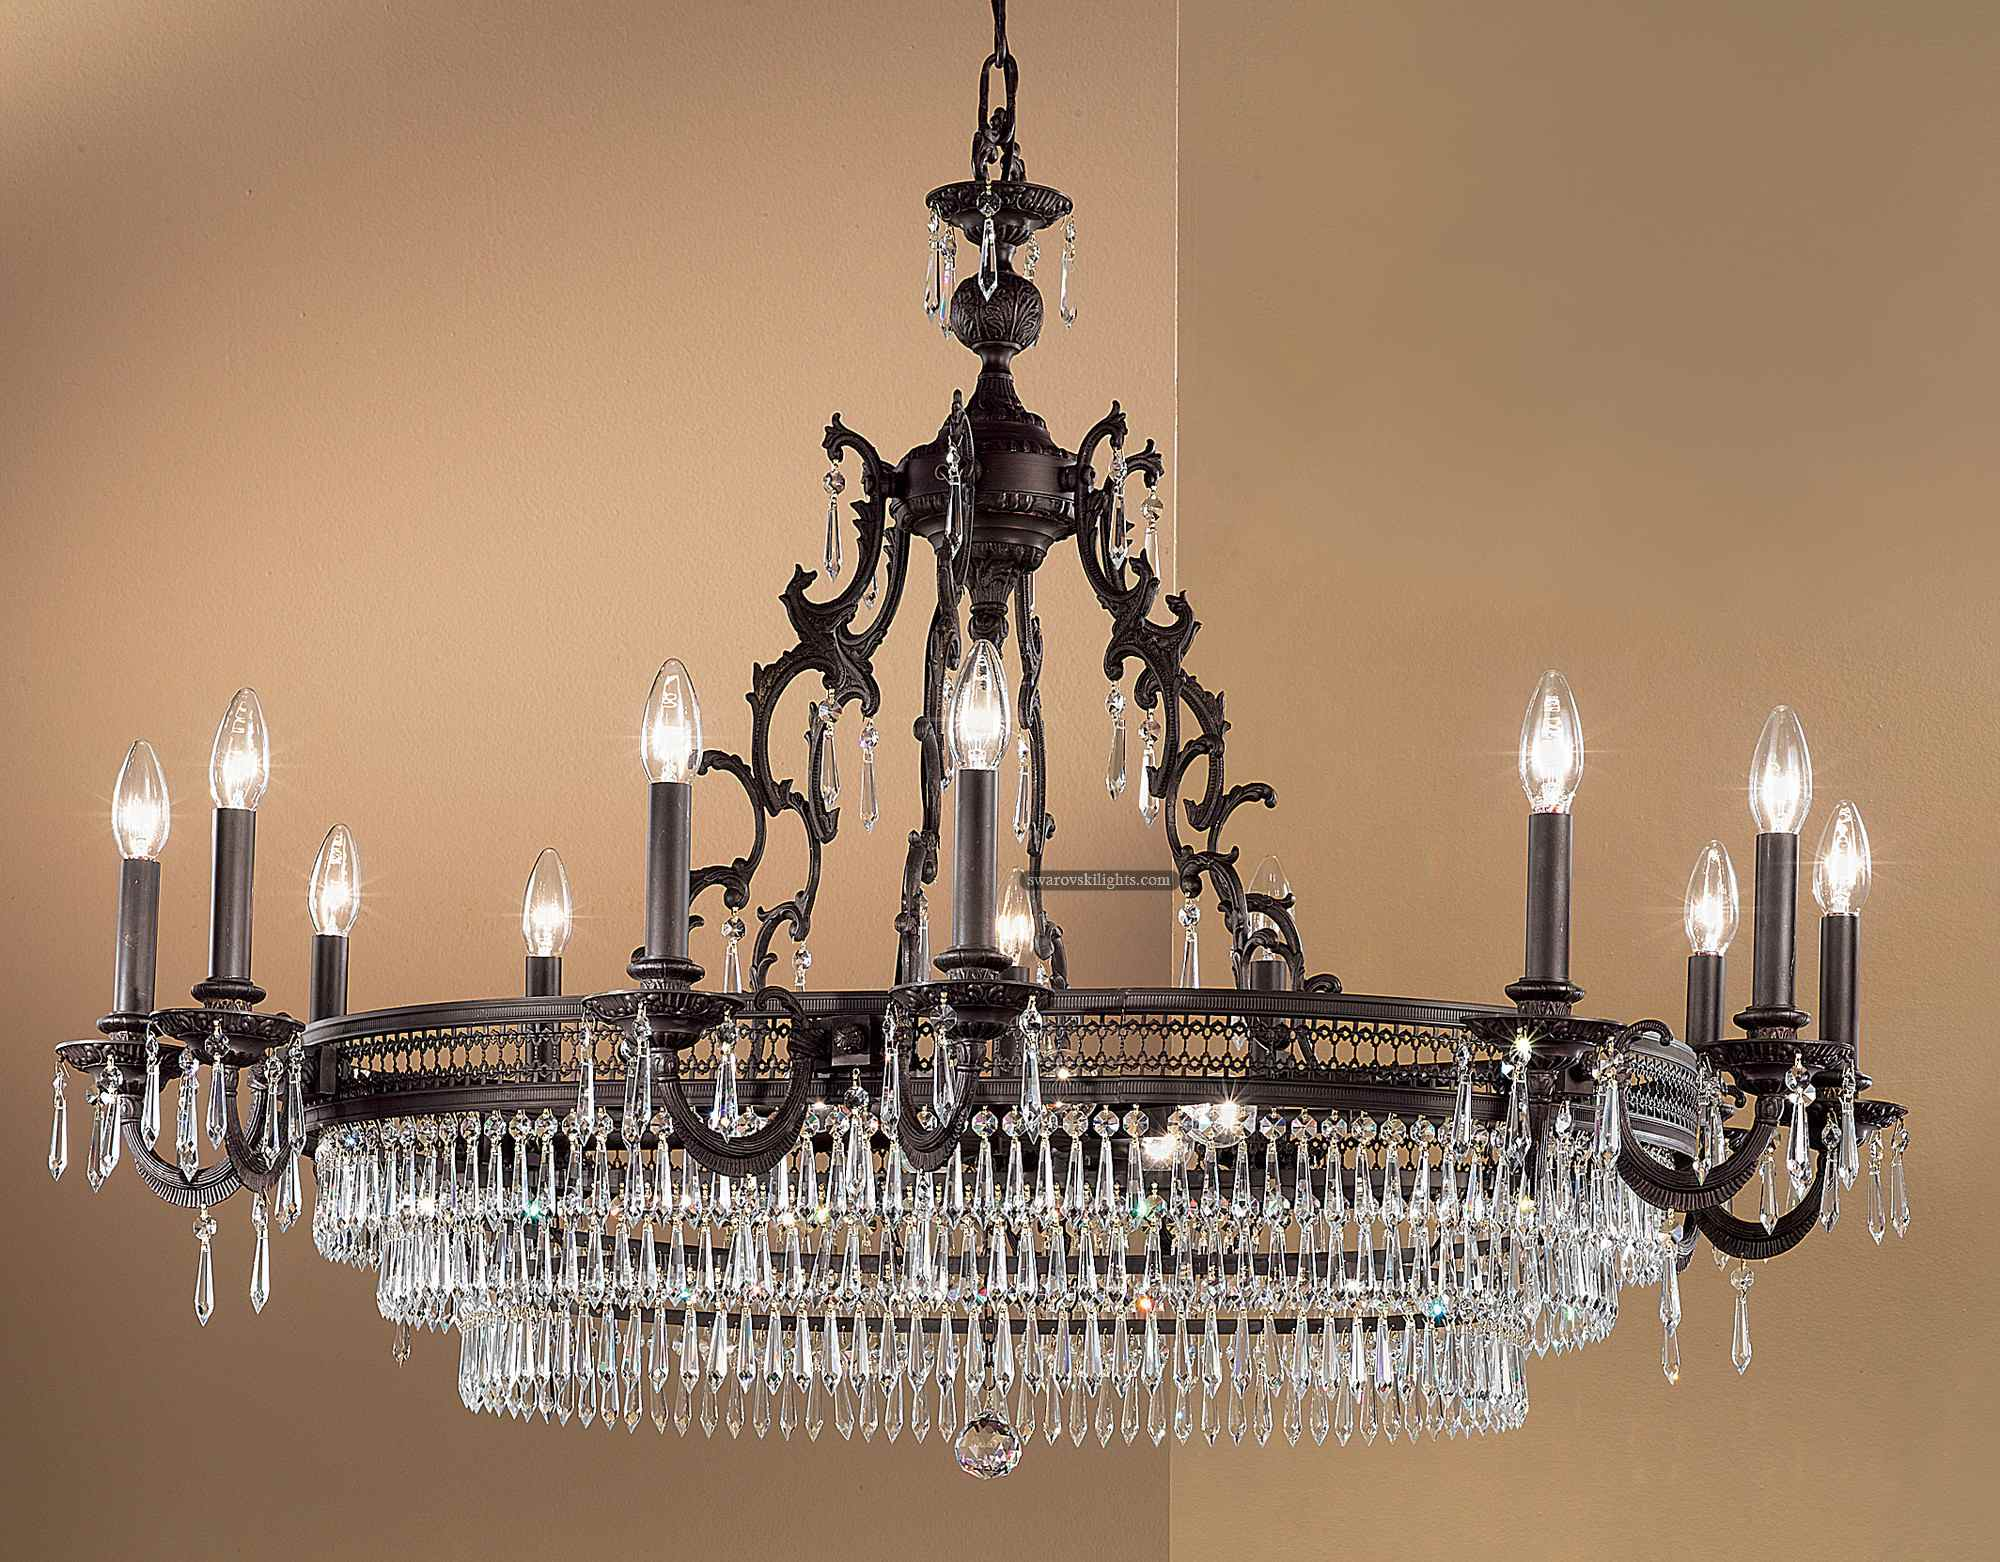 Wrought iron crystal chandeliers hongkong sunwe lighting coltdwe wrought iron crystal chandeliers hongkong sunwe lighting coltdwe specialize in making swarovski crystal chandeliers swarovski crystal chandelier arubaitofo Choice Image